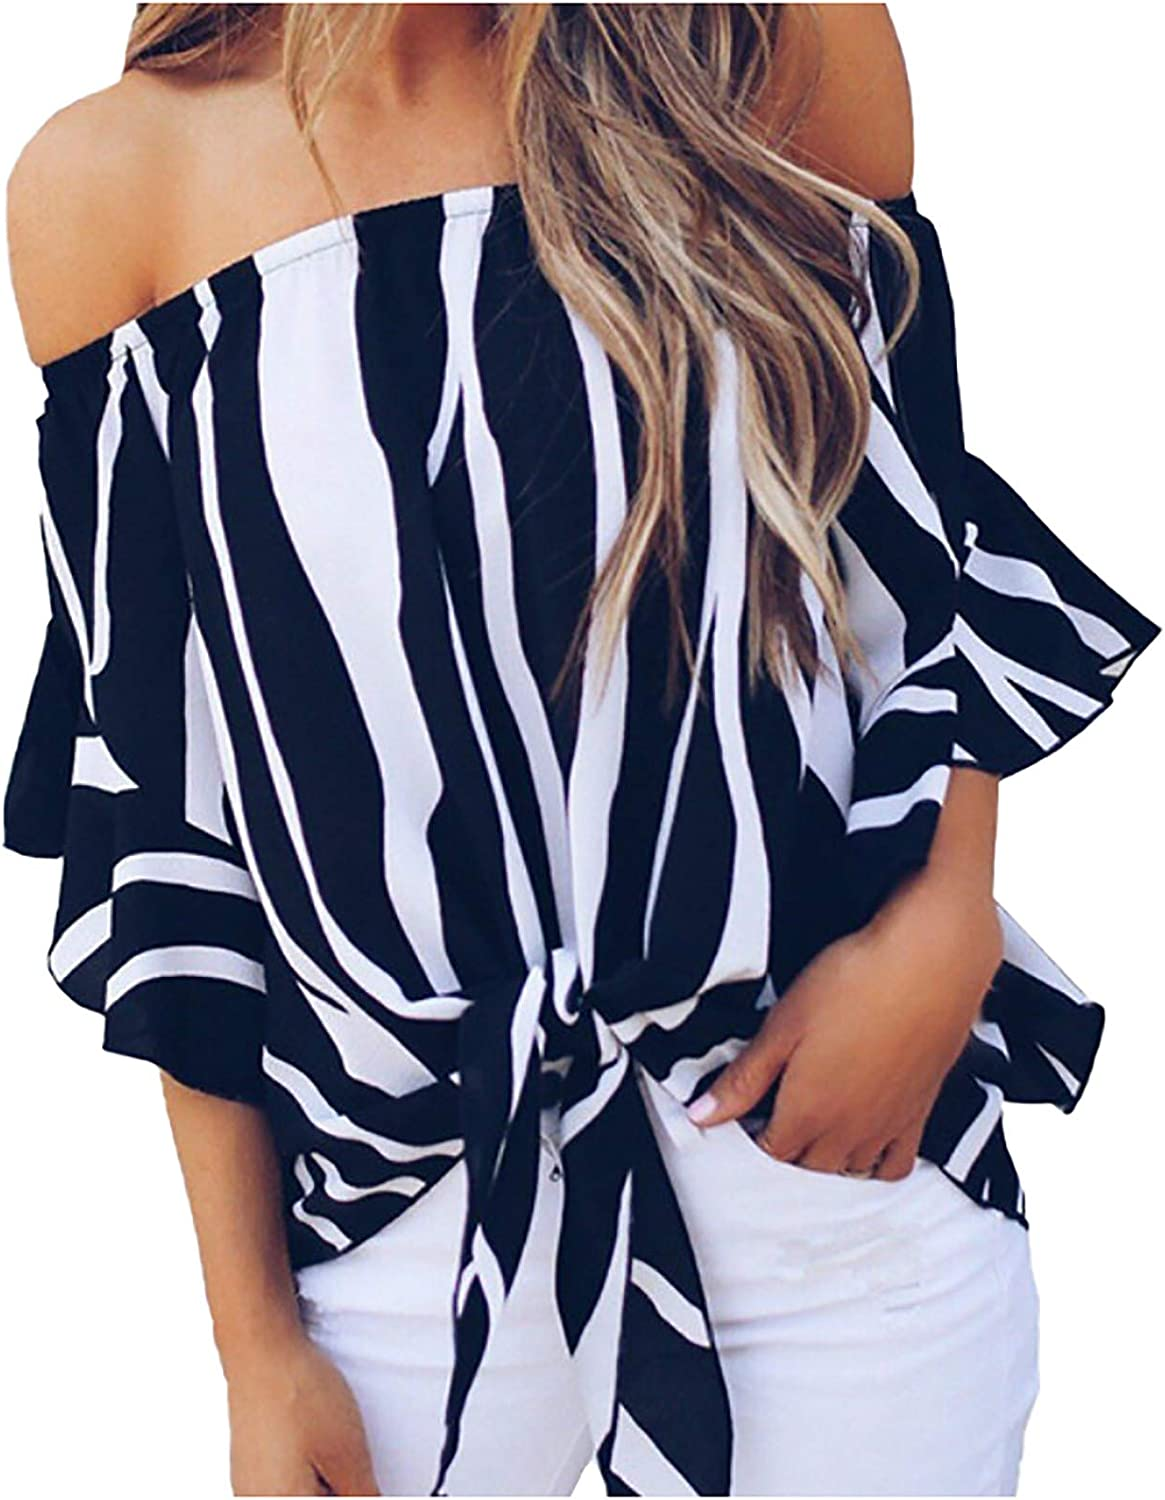 Womens Sexy Off Shoulder Tops Ruffles Half Sleeve Blouse Tie Knot T Shirt Flowy Stylish Pullover